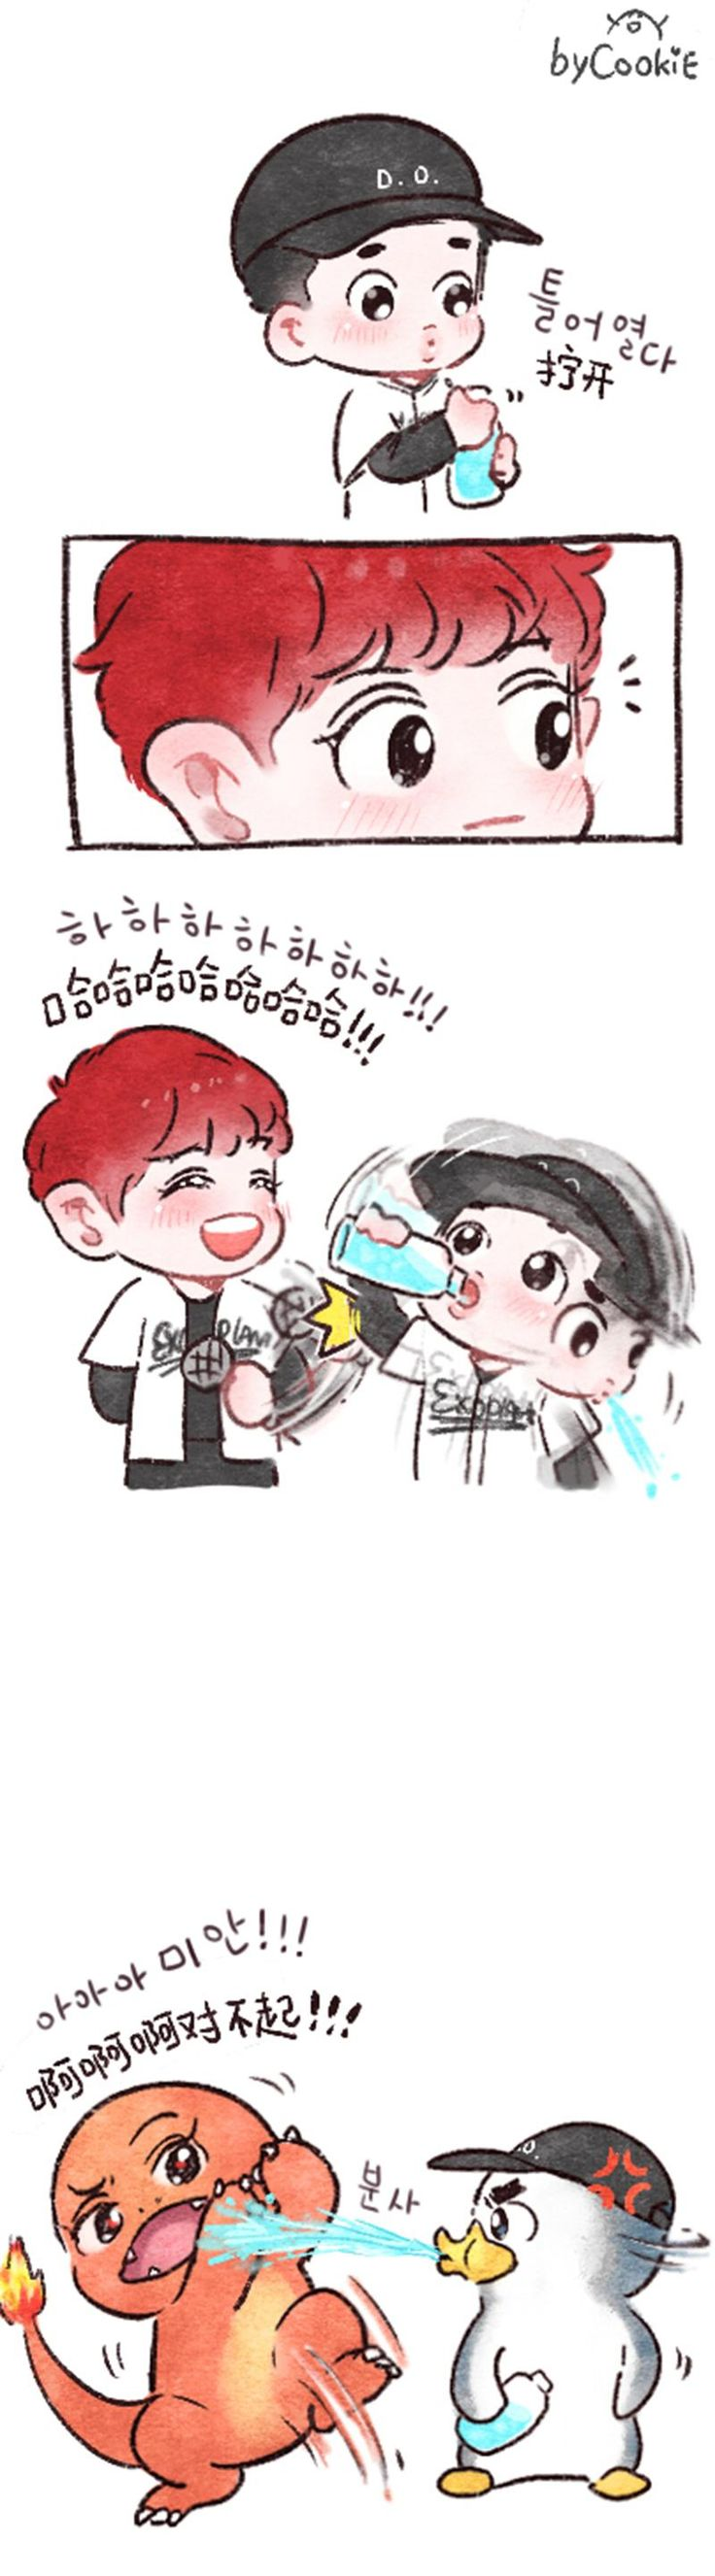 #chanyeol#  #D.O.#  #EXO#  #cookie#